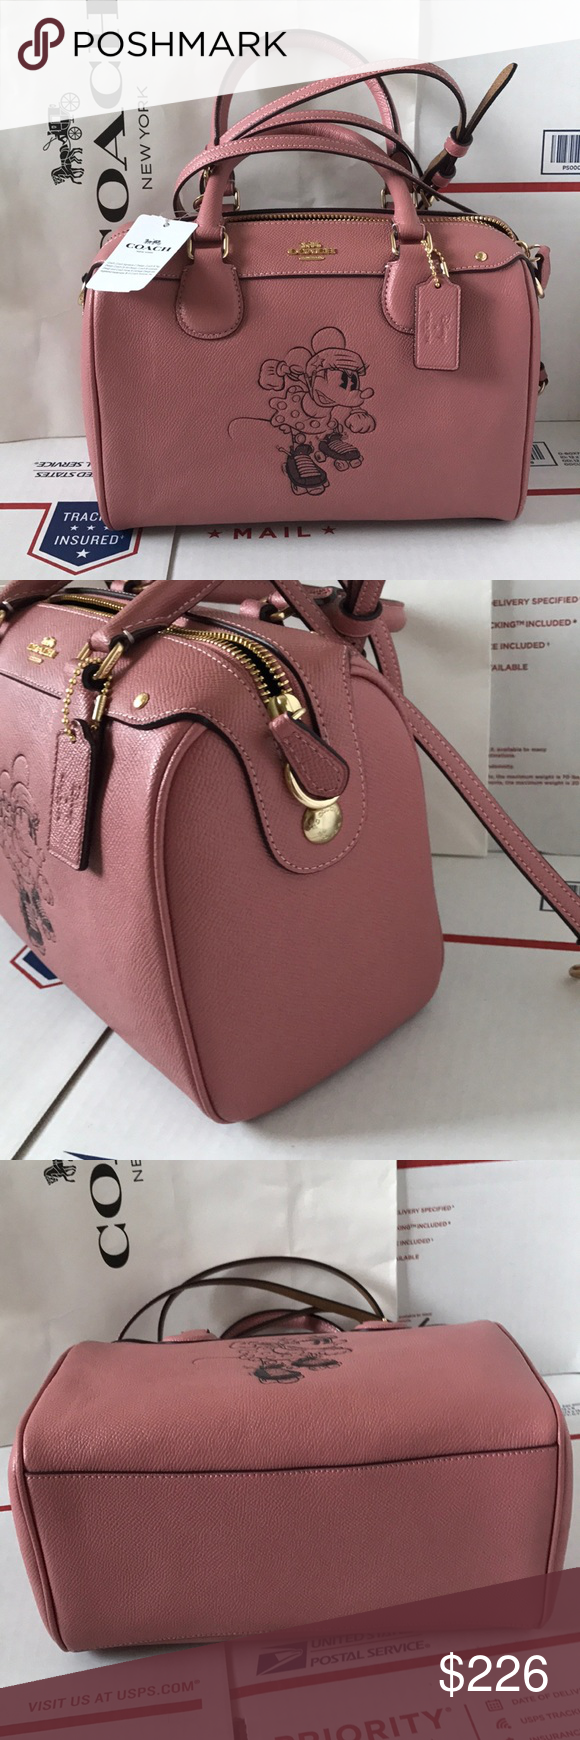 23c323966b 🎆💕coach Minnie Bennett💕Satchel crossbody Authentic brand new with tags.  Strap removable can wear Satchel  crossbody. Gold hard wear